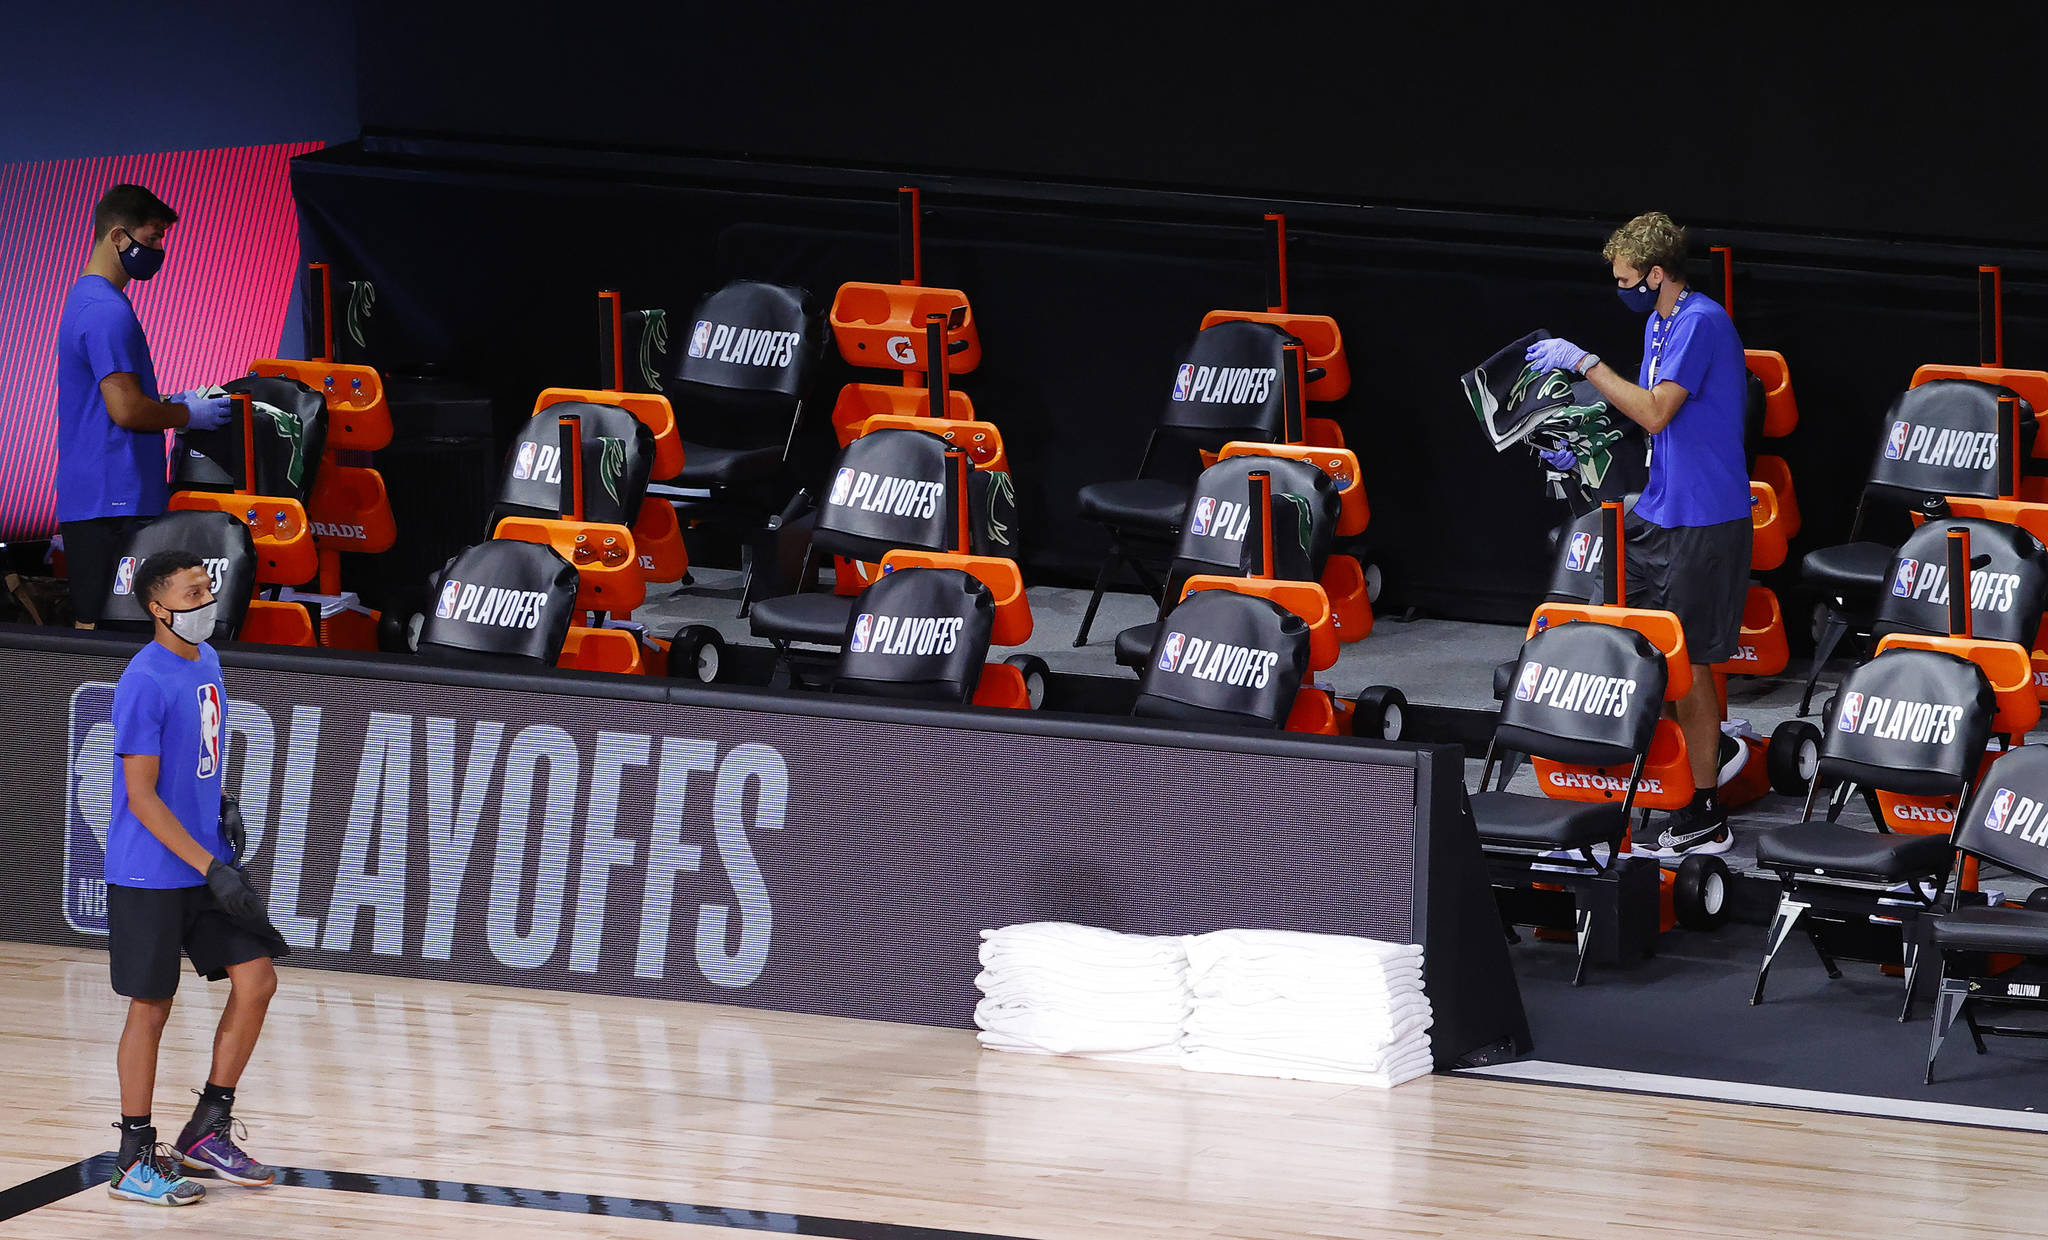 Workers remove towels from the Milwaukee Bucks empty bench after the Bucks sit out Game Five of the Eastern Conference First Round in protest during the 2020 NBA Playoffs against the Orlando Magic at AdventHealth Arena at ESPN Wide World Of Sports Complex on Aug. 26, 2020 in Lake Buena Vista, Florida. The Bucks are boycotting the game to protest the police shooting of Jacob Black. (Kevin C. Cox/Getty Images/TNS)